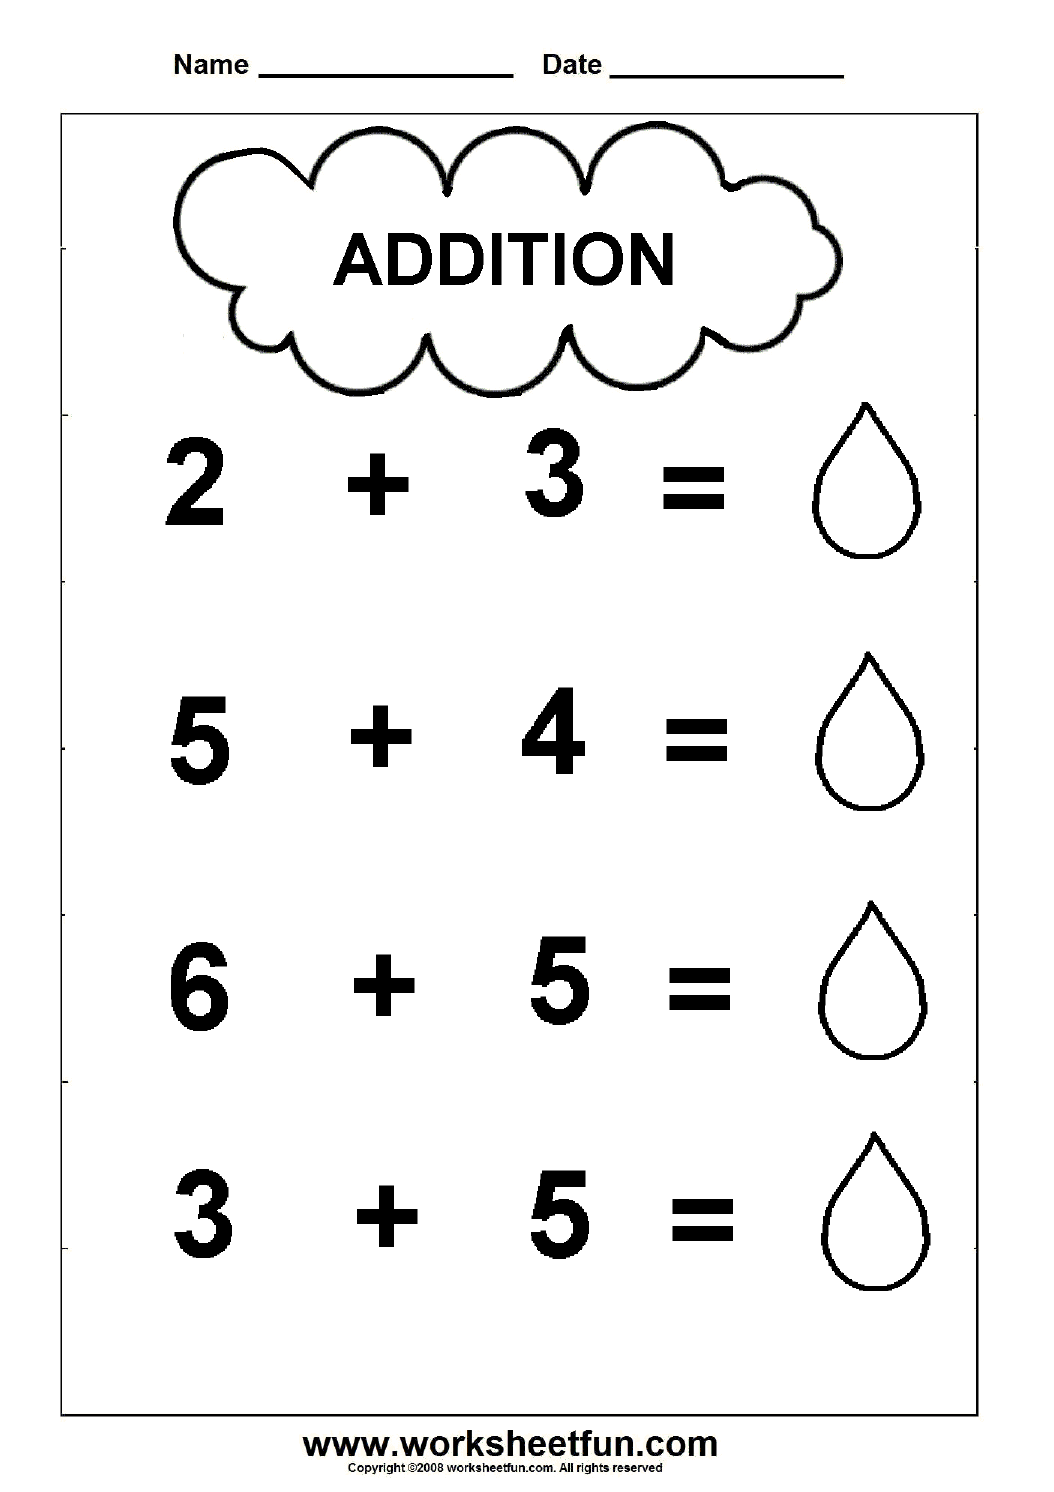 math worksheet : simple addition worksheets kindergarten  synhoff : Free Printable Addition Worksheets For Kindergarten